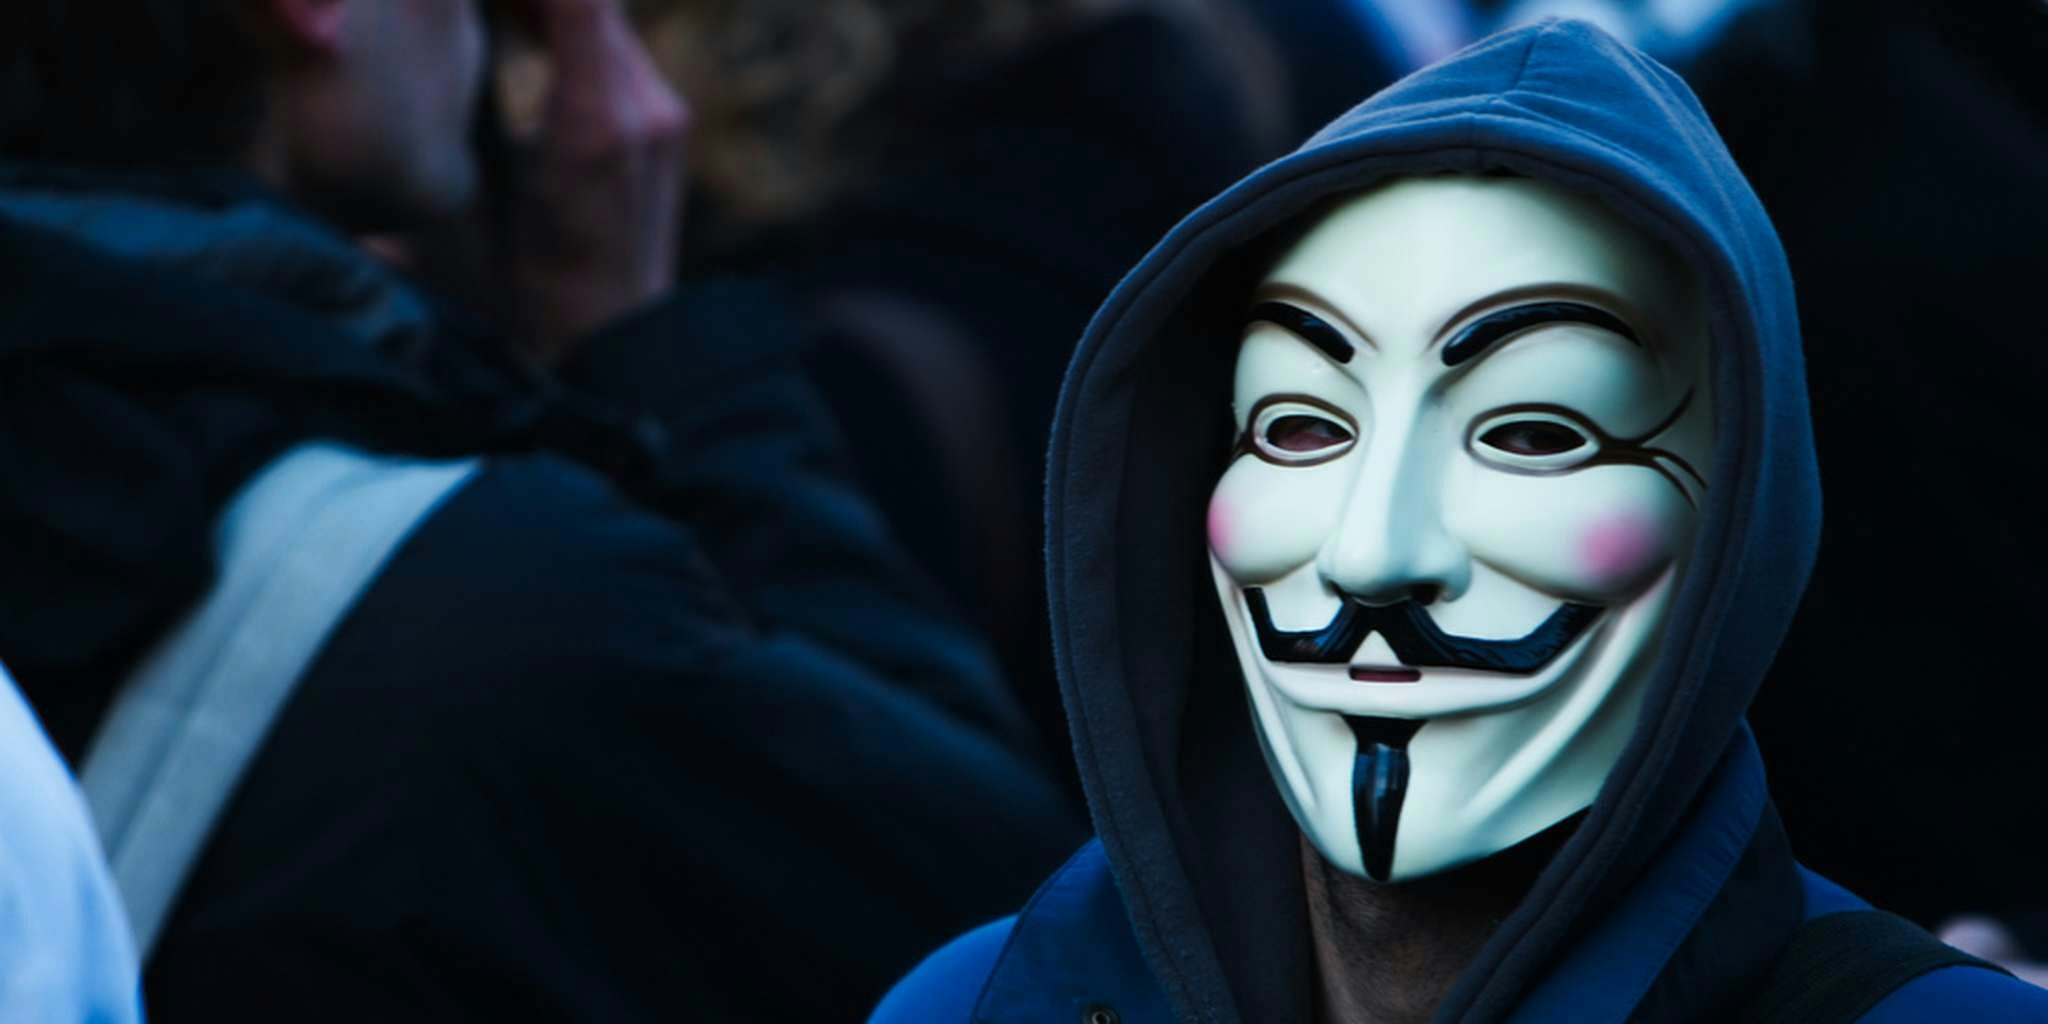 Anonymoushackers Hire A Hacker Get Proof Before Payment - HD2048×1024